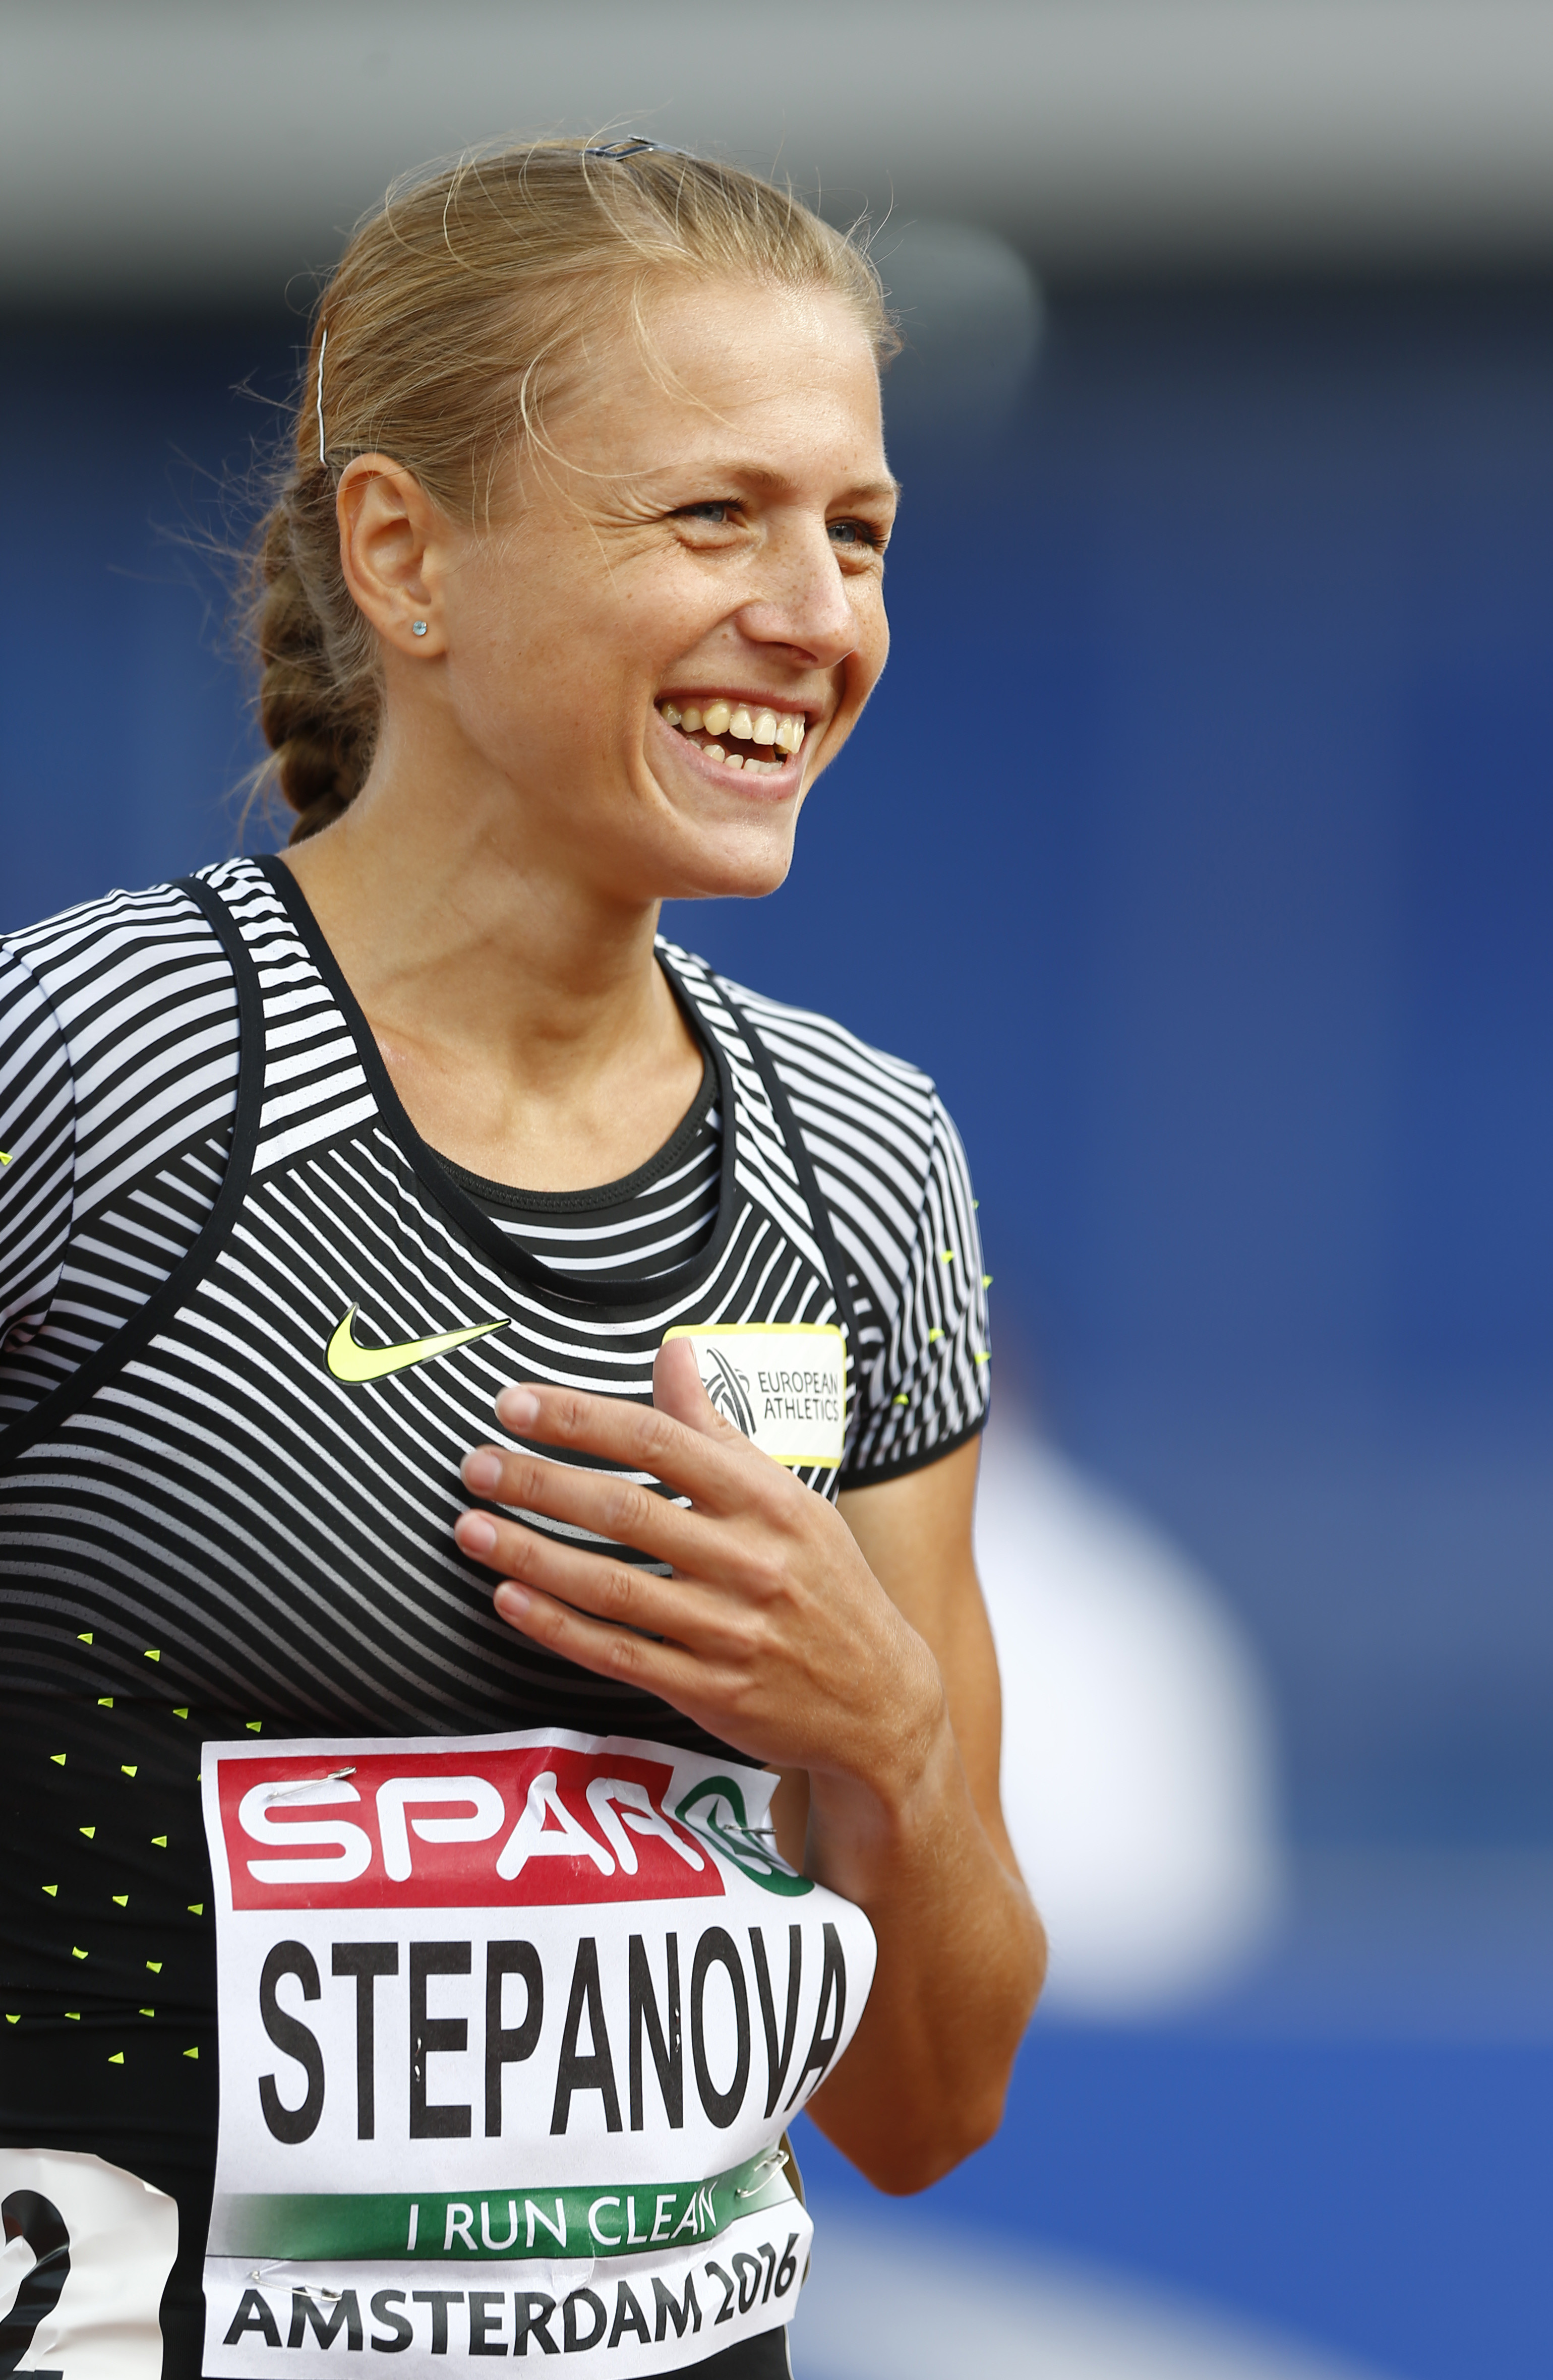 Russian doping whistleblower Yuliya Stepanova who runs under a neutral flag smiles before competing in a women's 800m heat during the European Athletics Championships in Amsterdam, the Netherlands, Wednesday, July 6, 2016. (AP Photo/Matthias Schrader)